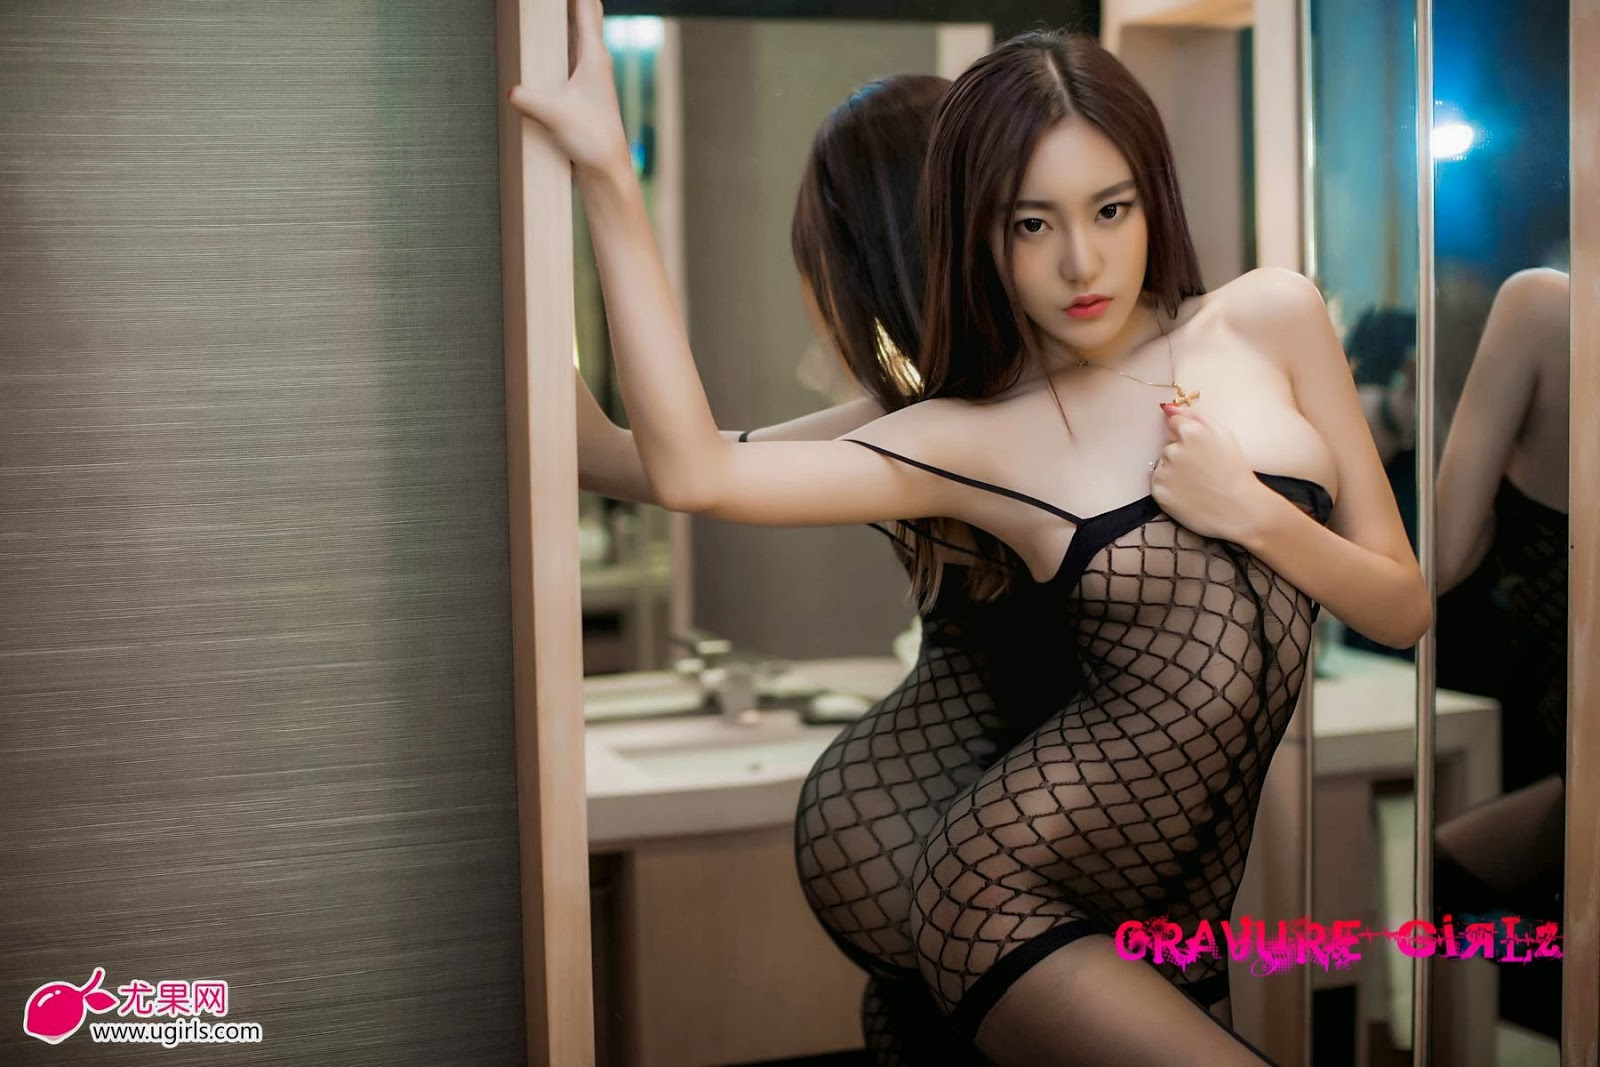 Chi Wan Guo Busty Chinese Girl Leaked Restroom Undressing